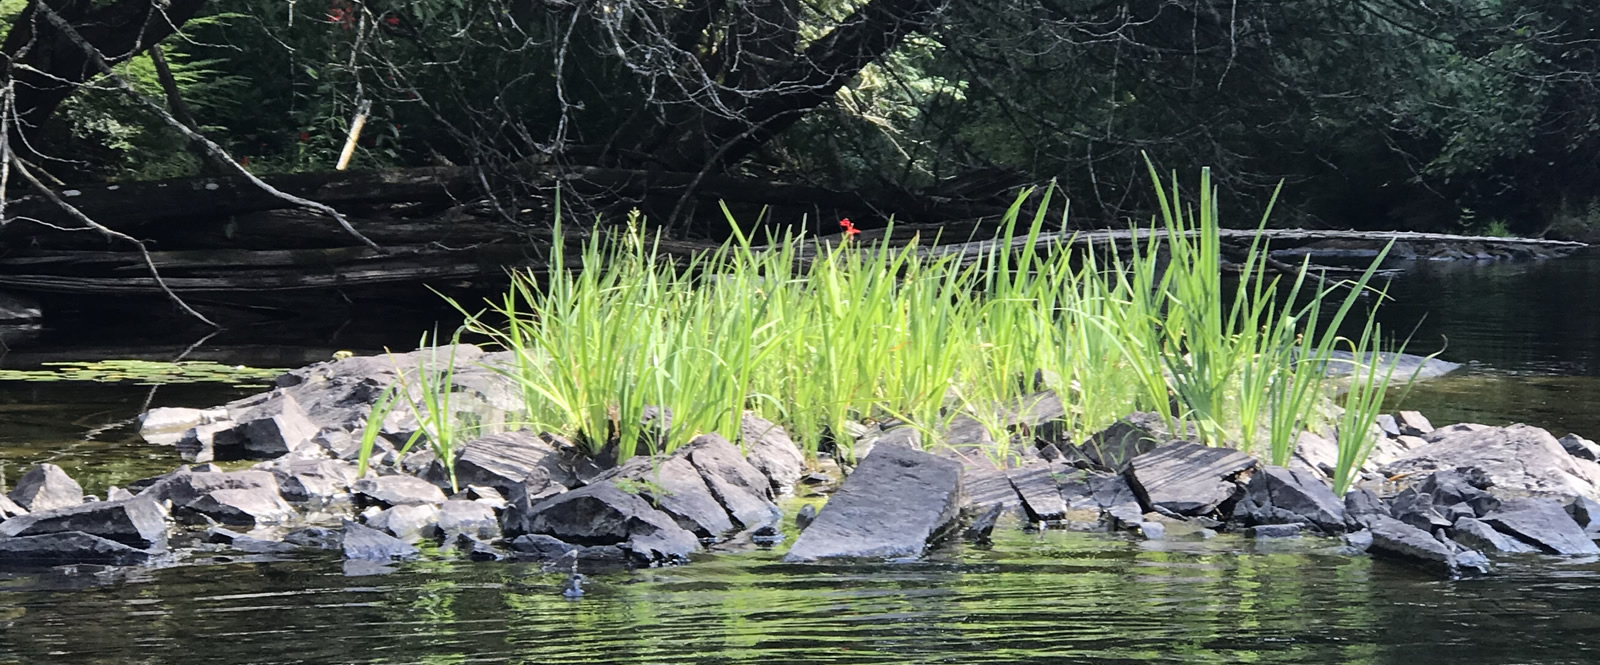 Bright green grass growing within rough rocks on a river